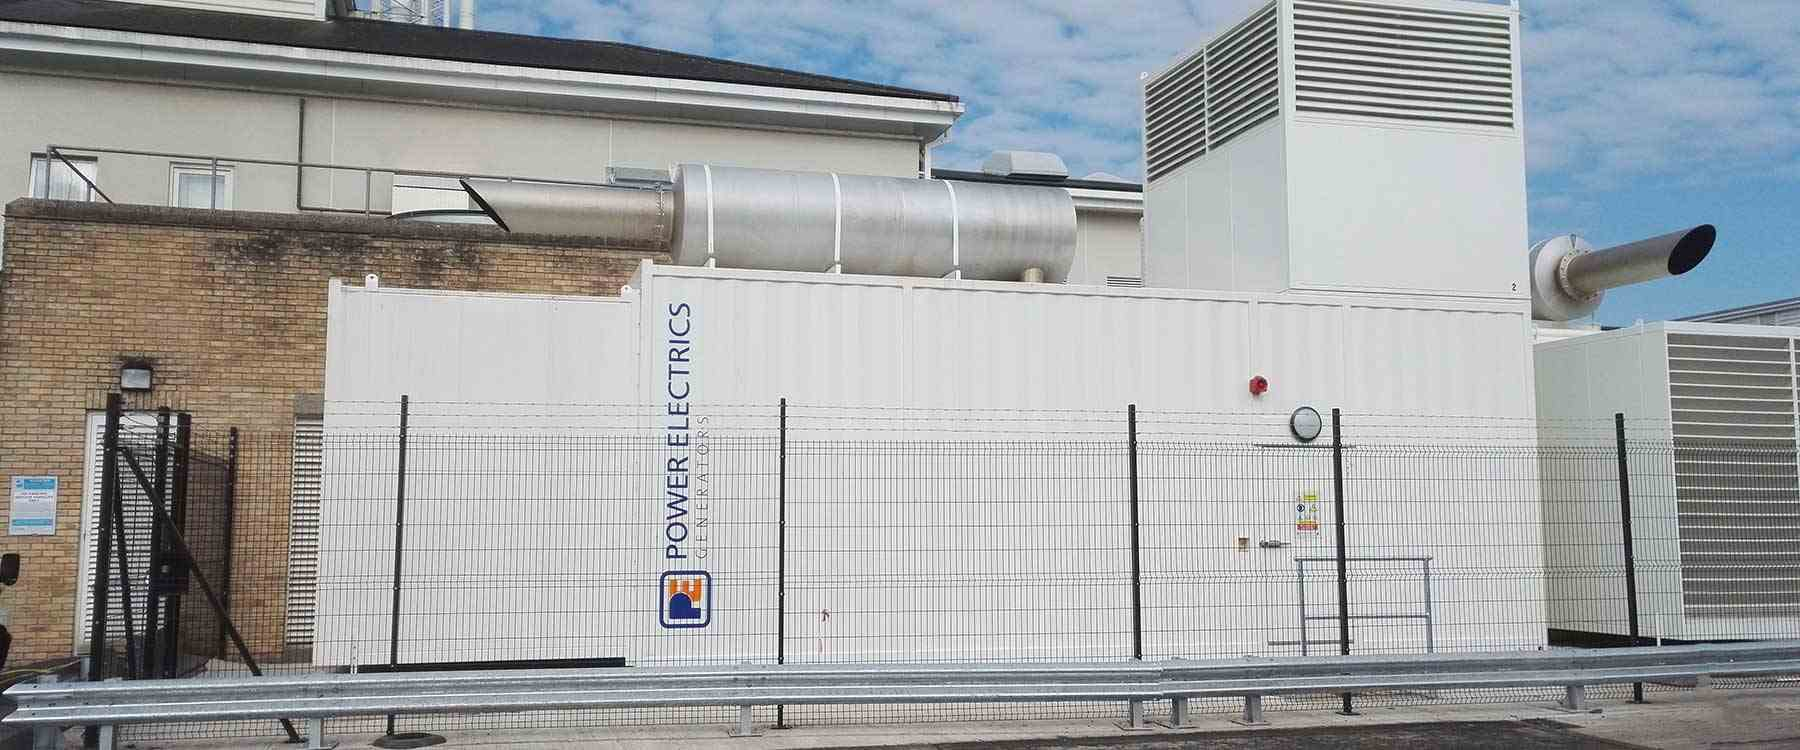 Generator located at healthcare facility)